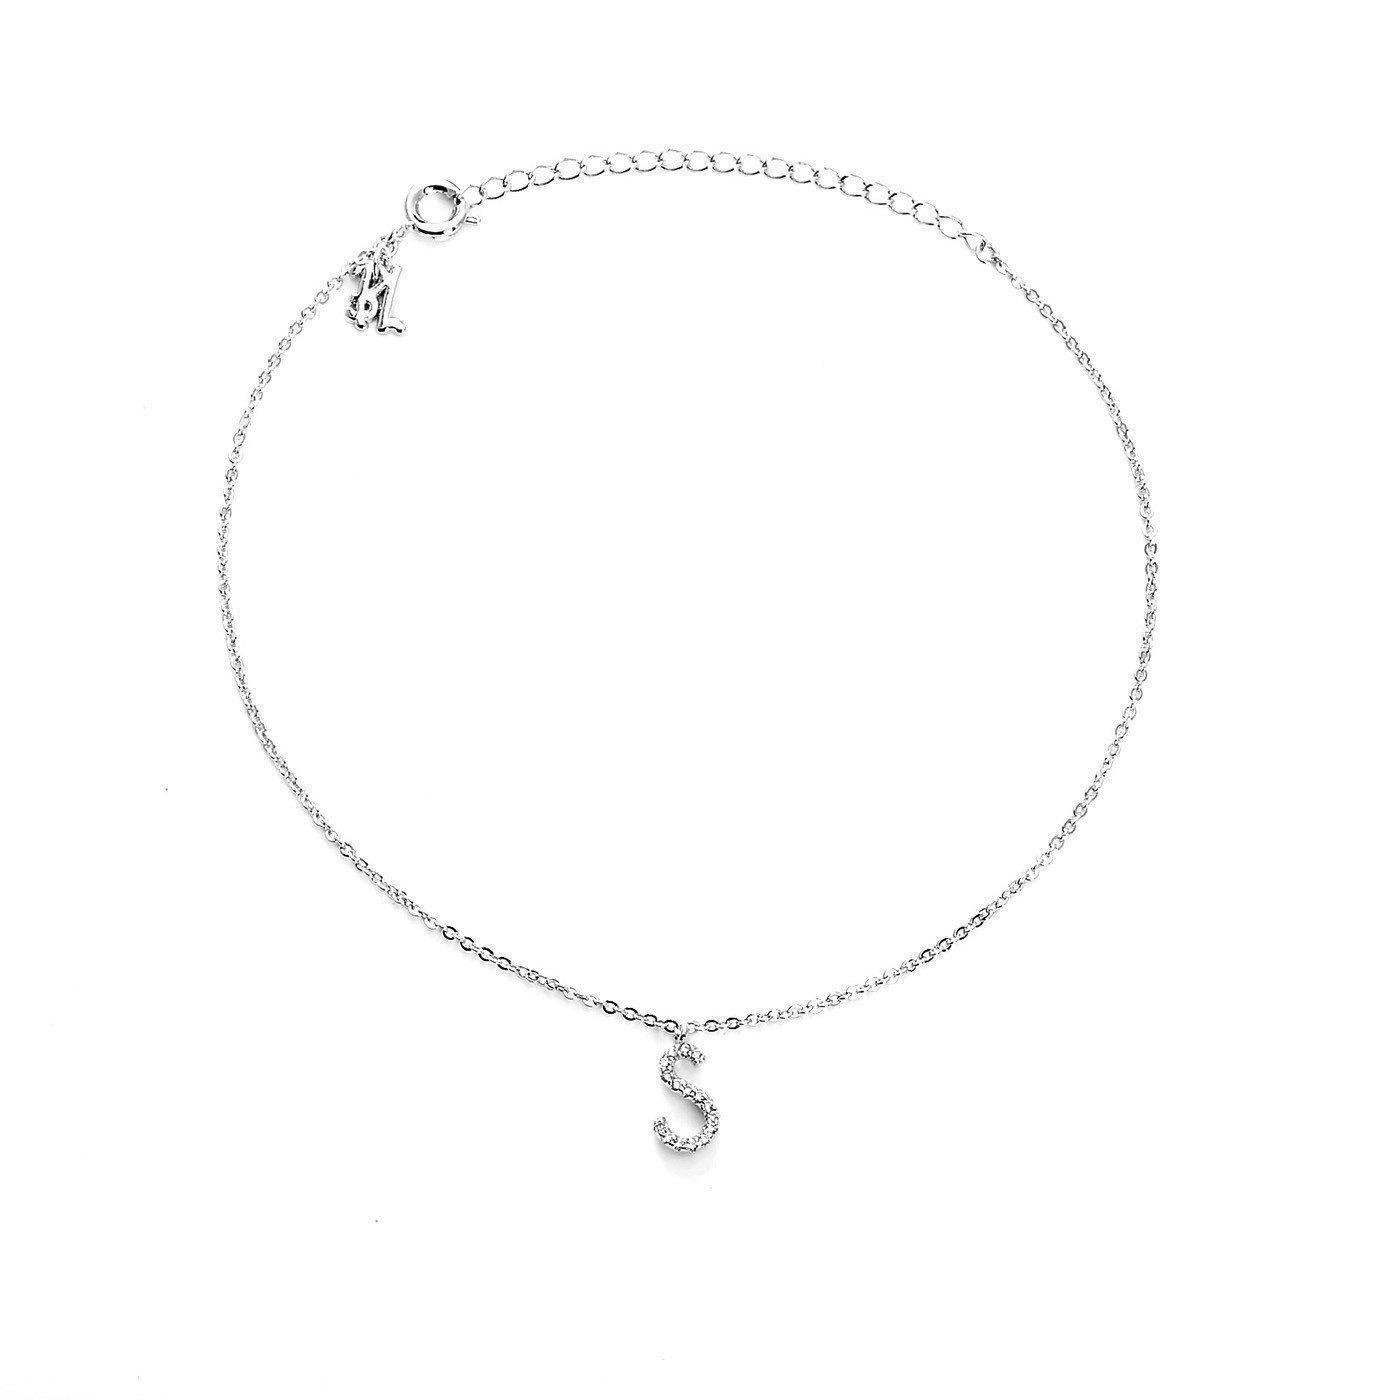 Blinglane Your Initial S Fashion Anklet Jewelry Women